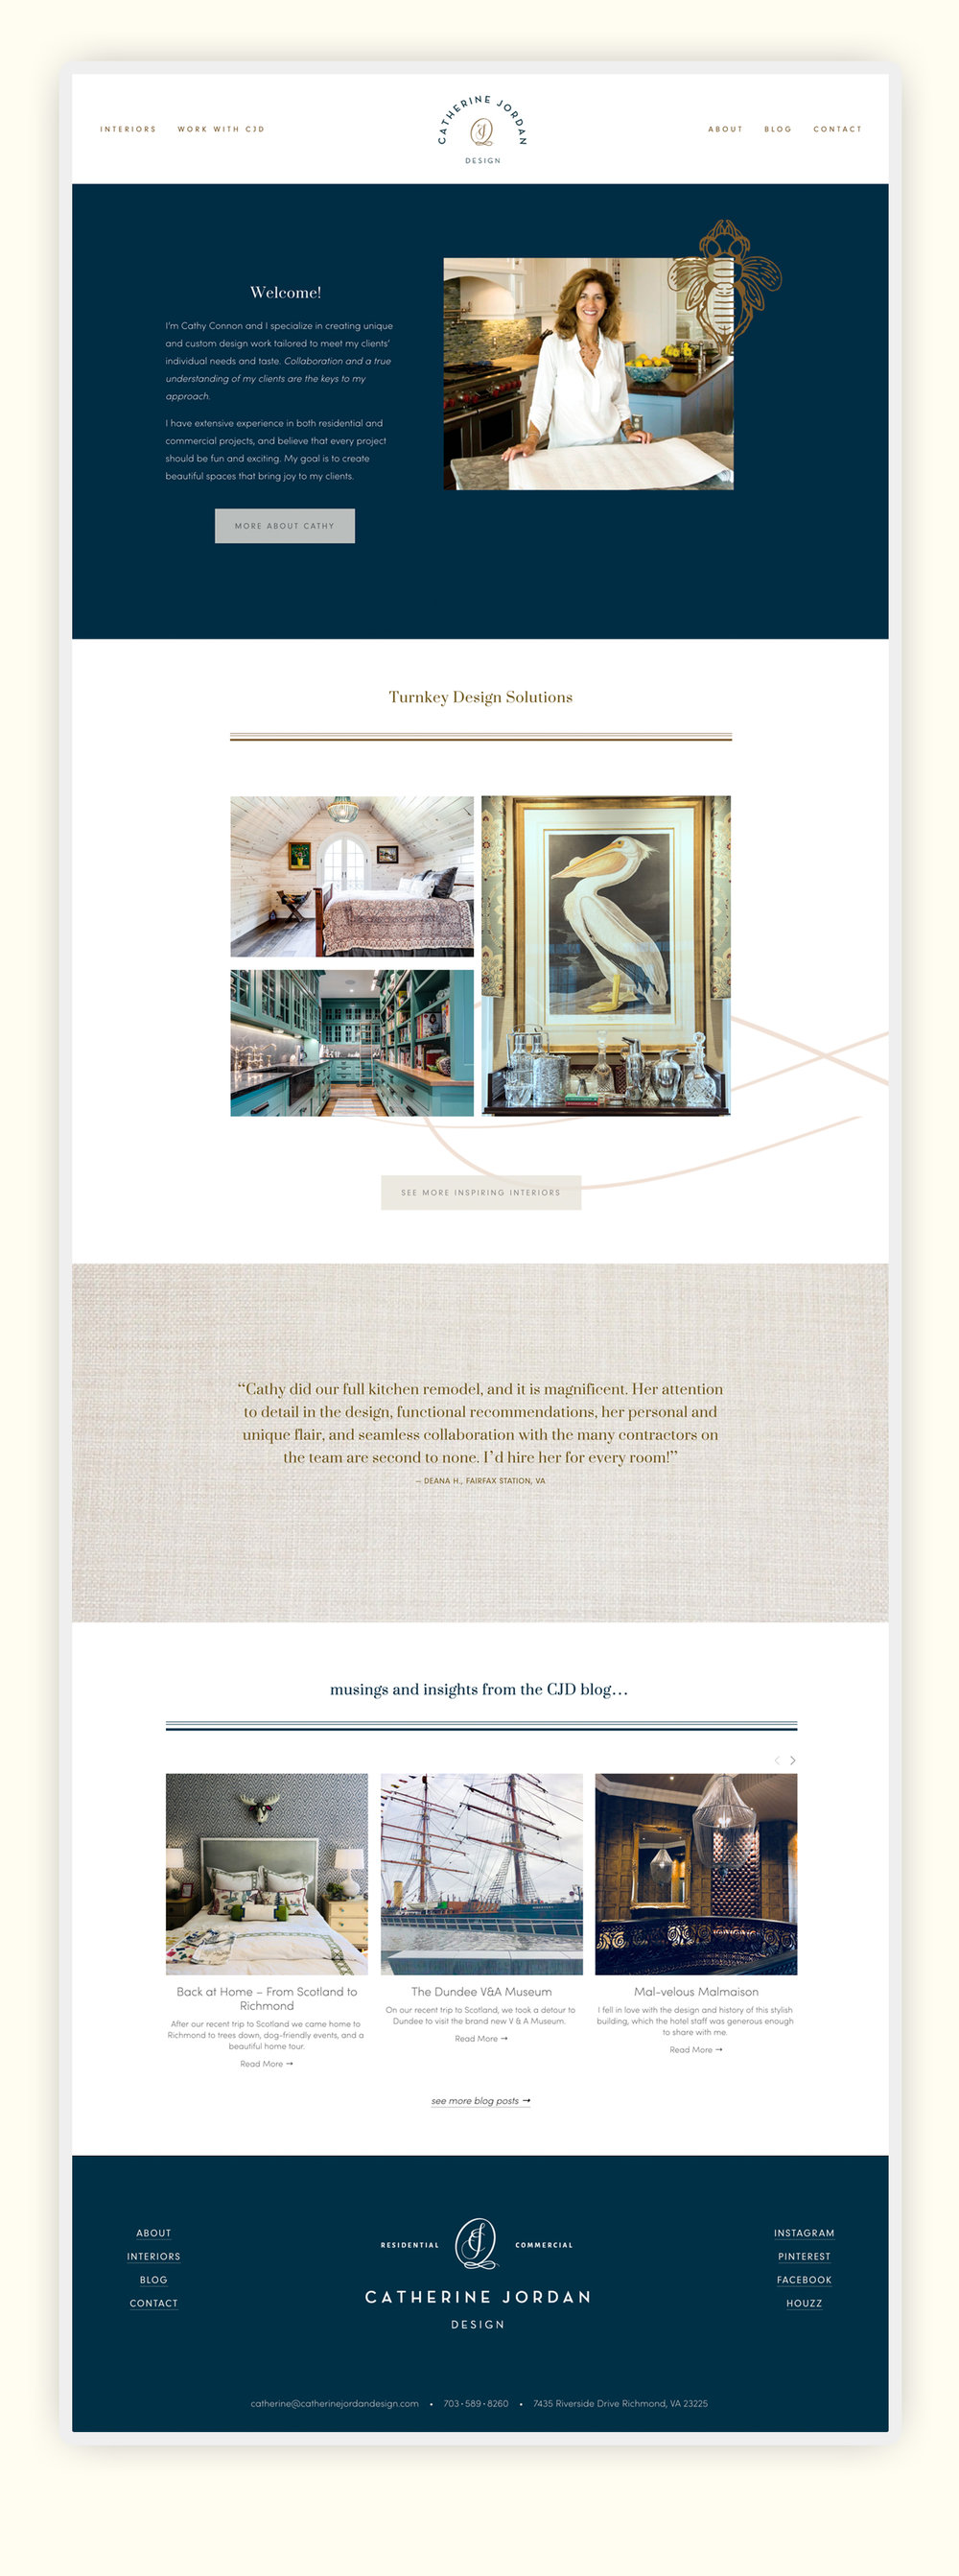 CJD_website-mockup-fullpage_home.jpg